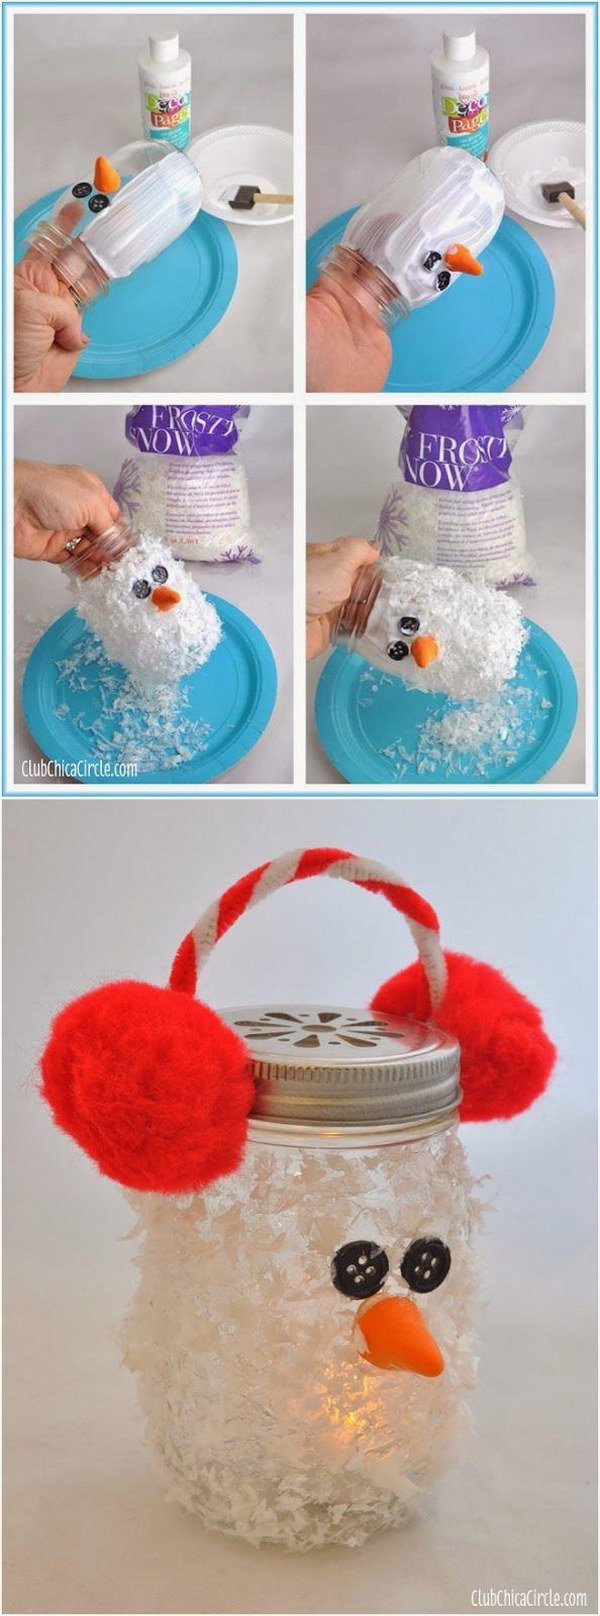 DIY Snowman Mason Jar Luminary Ornament